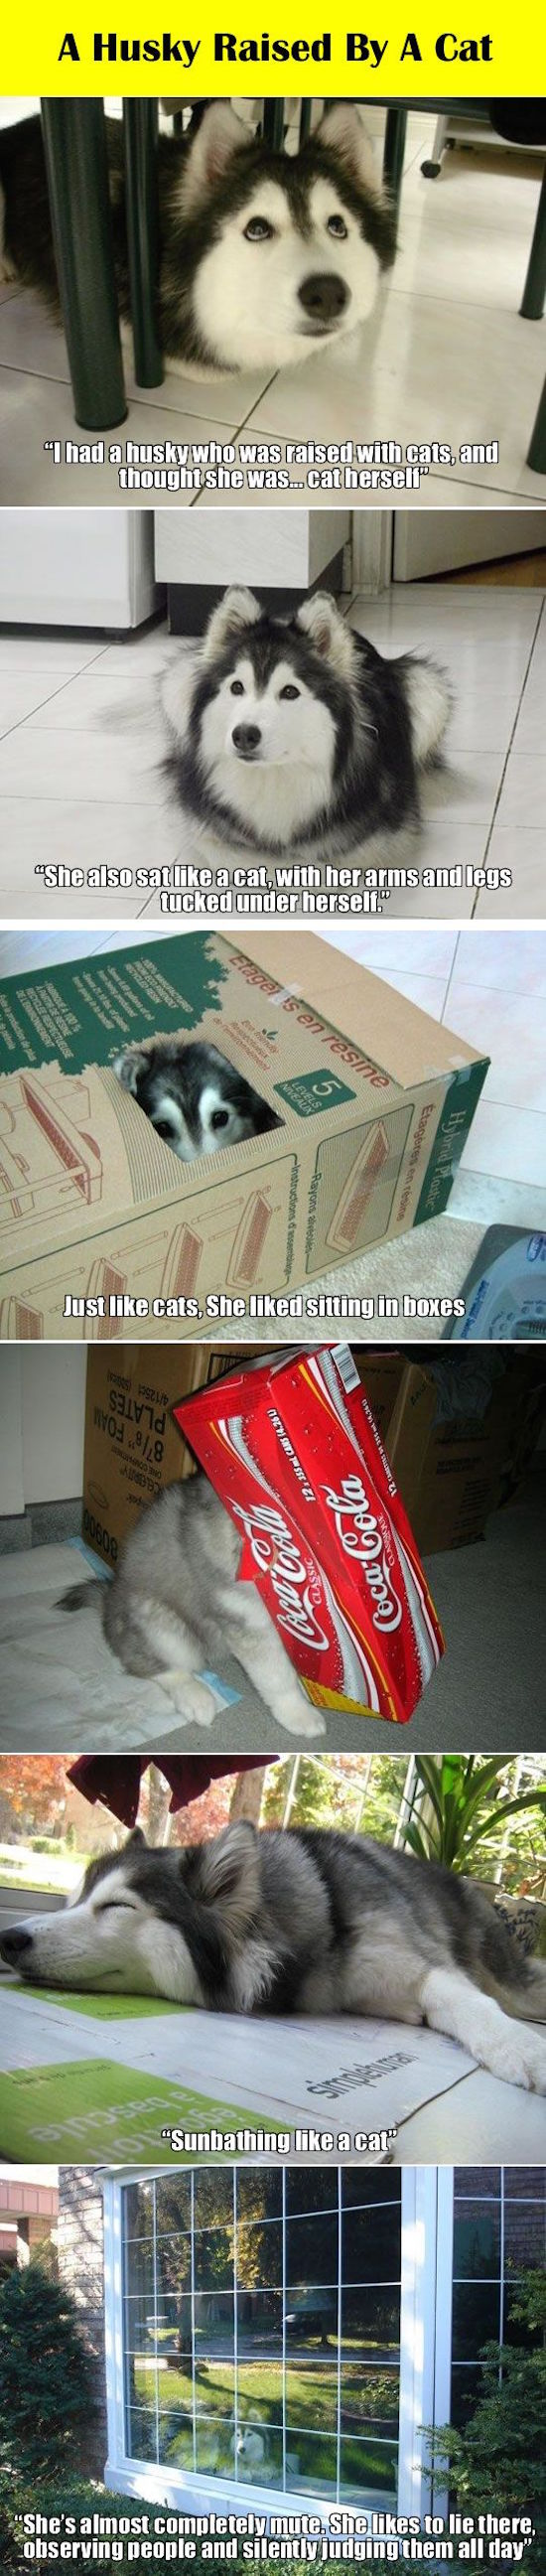 funny pictures of a husky acting like a cat